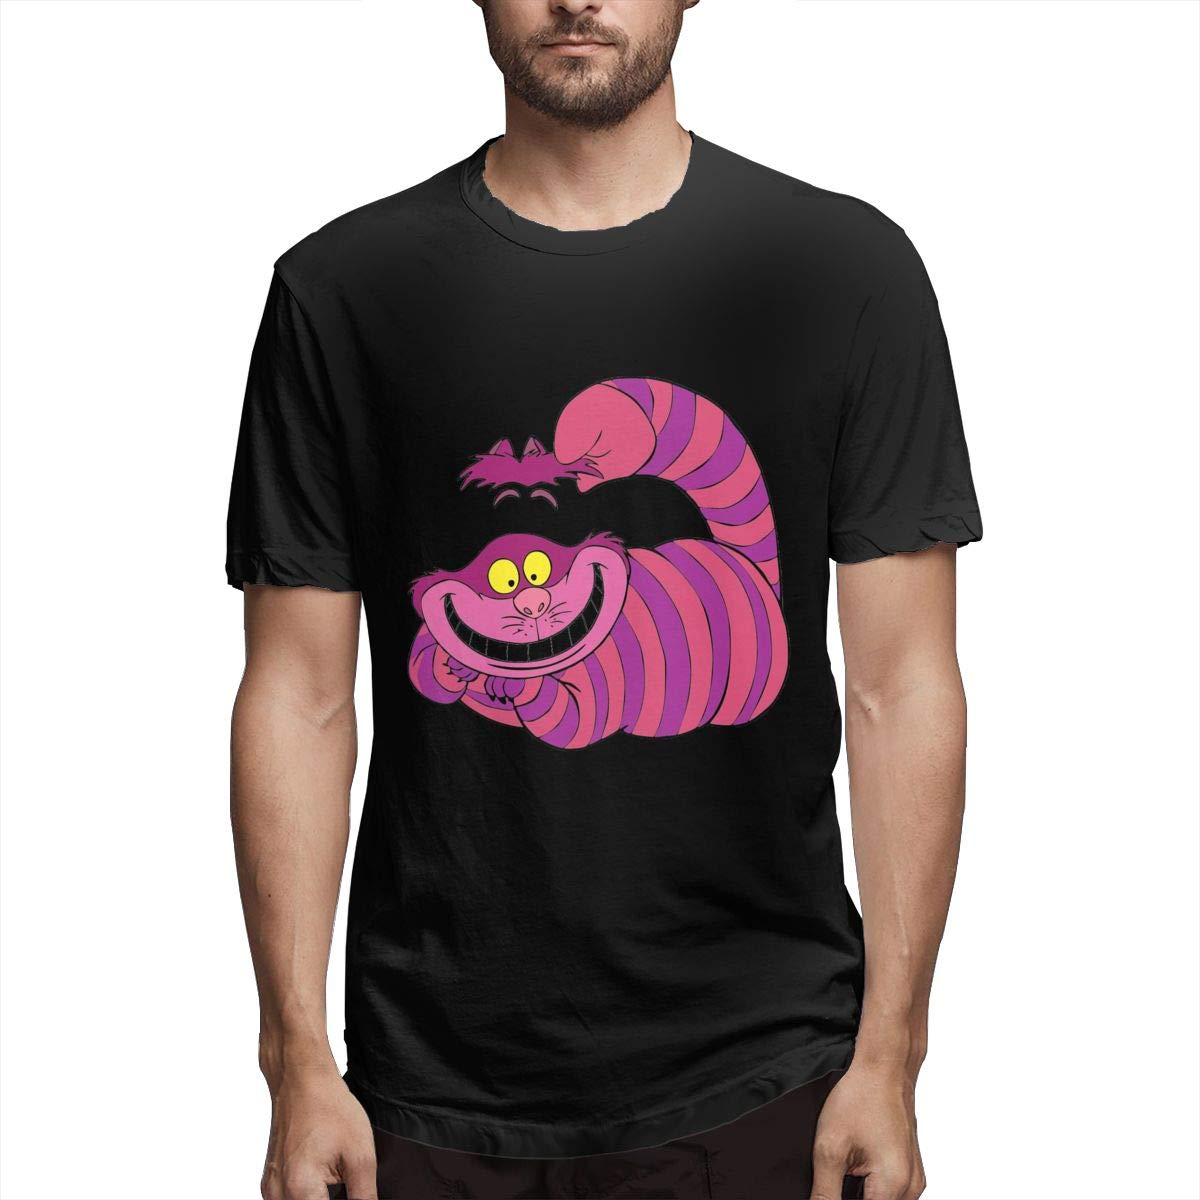 Lerzincser Mens Alice in Wonderland Cheshire Cat Humor Athletic Shirts